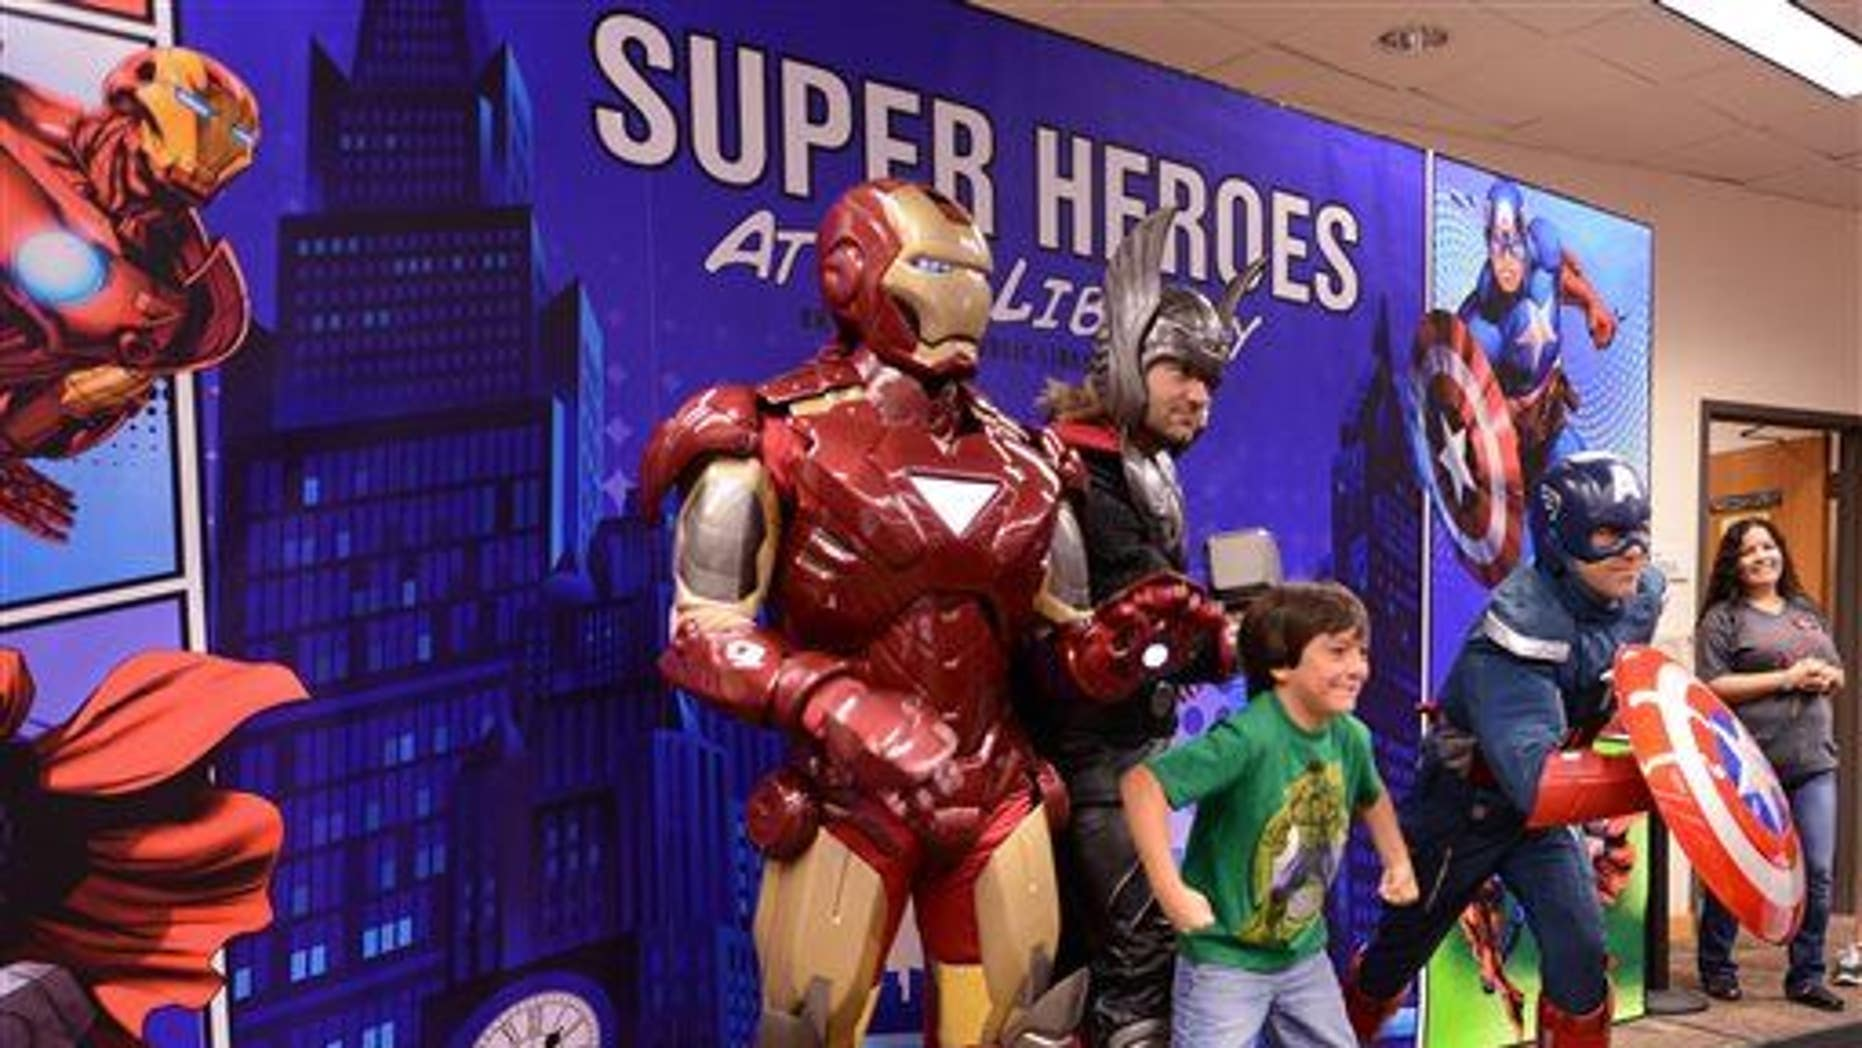 A boy strikes a pose with three superheroes in this file photo.